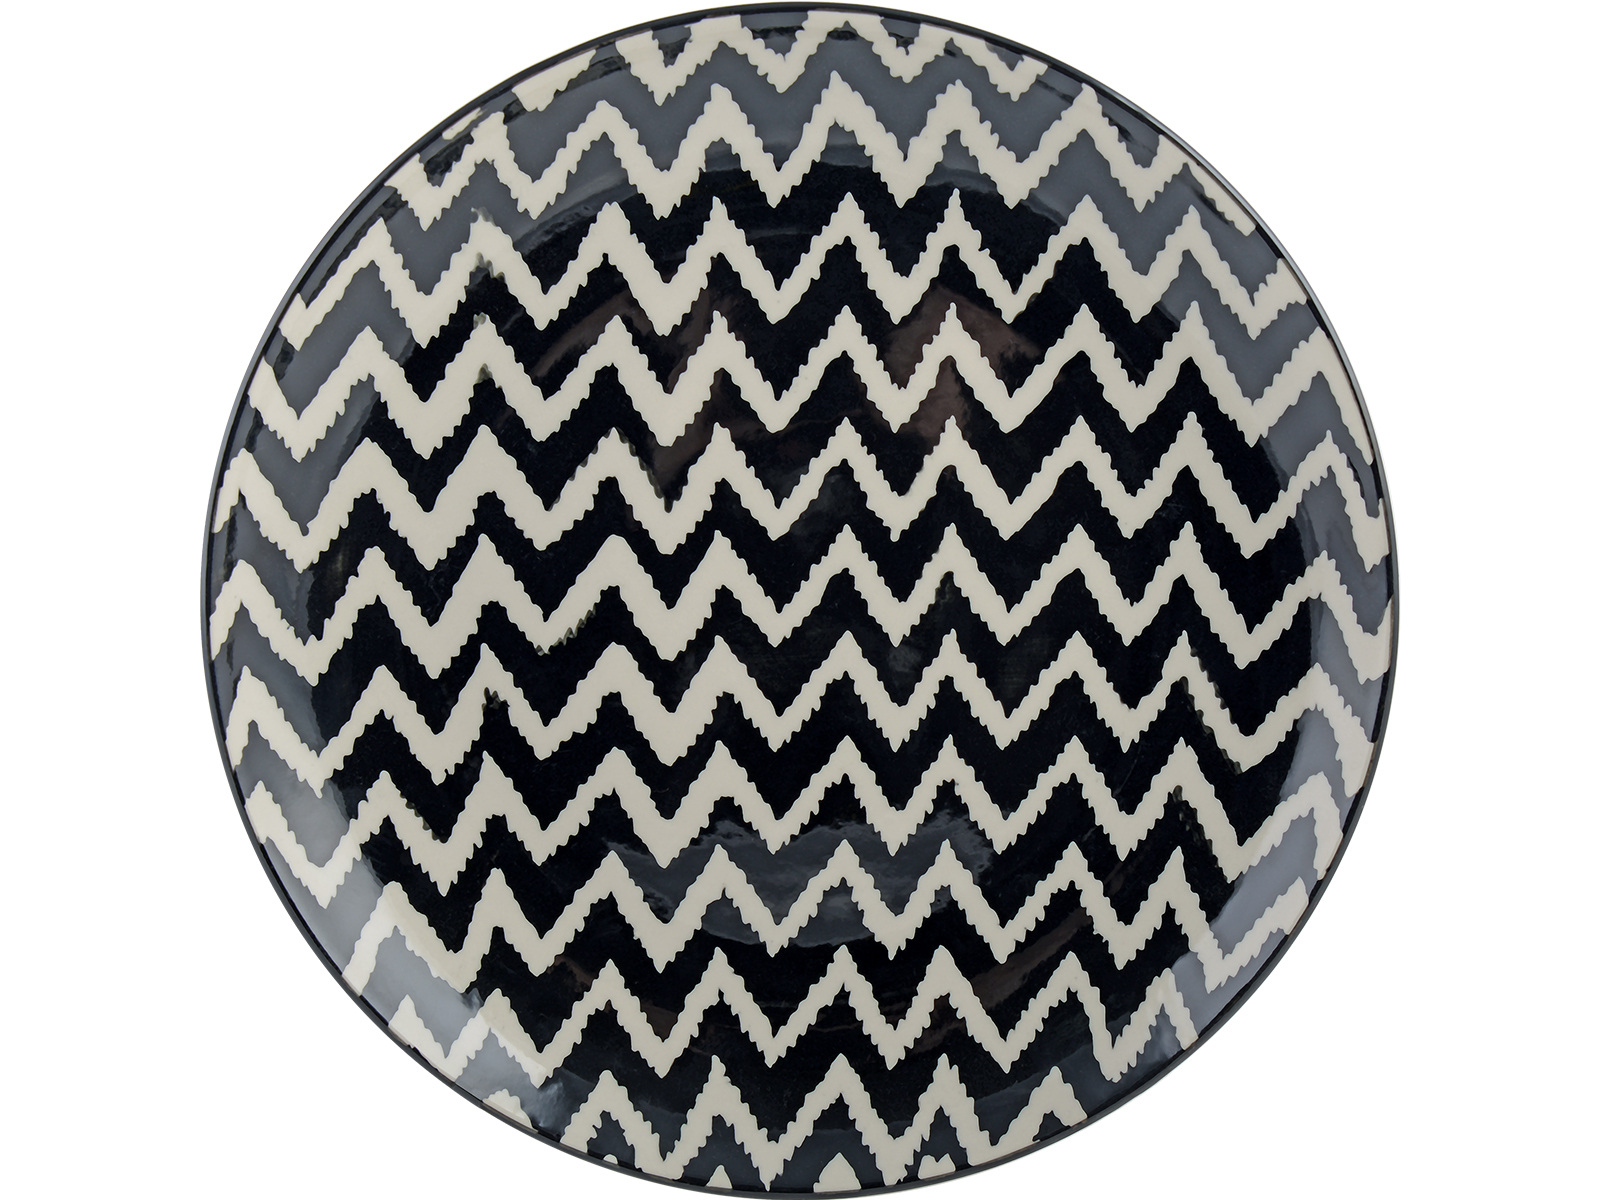 M By Mikasa Cocoon Chevron Dinner Plate